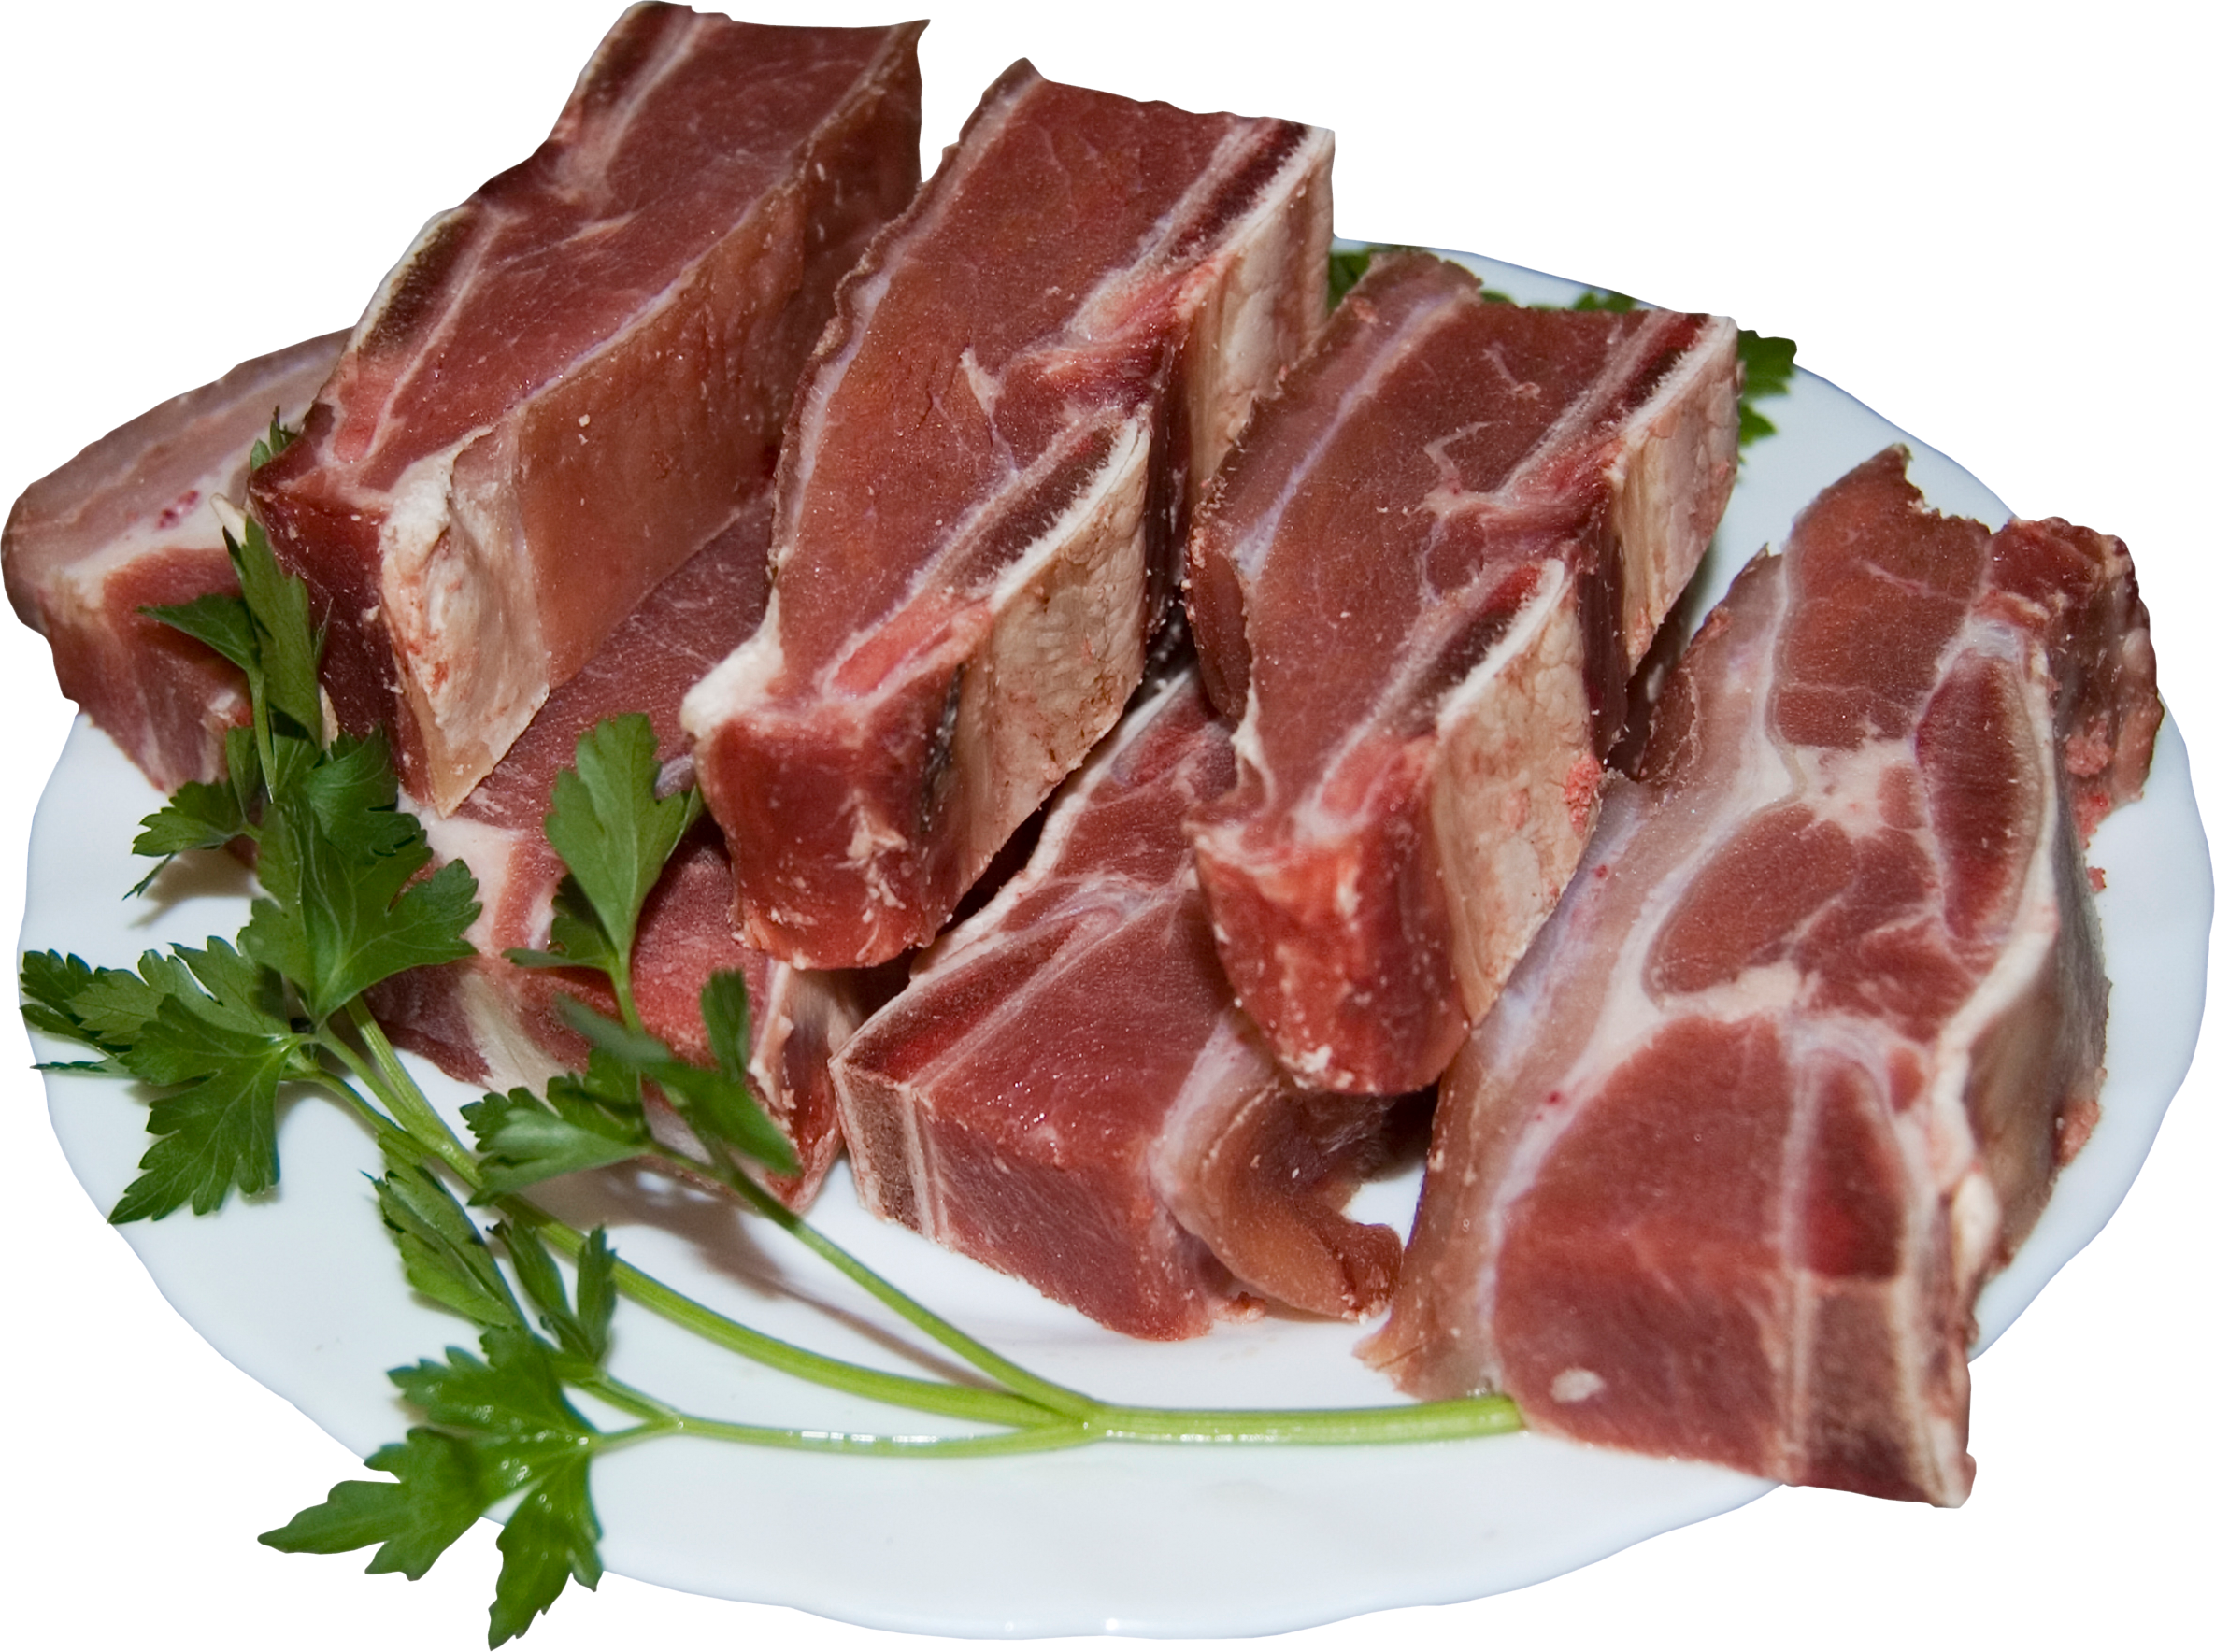 meat png images are available for download #23512